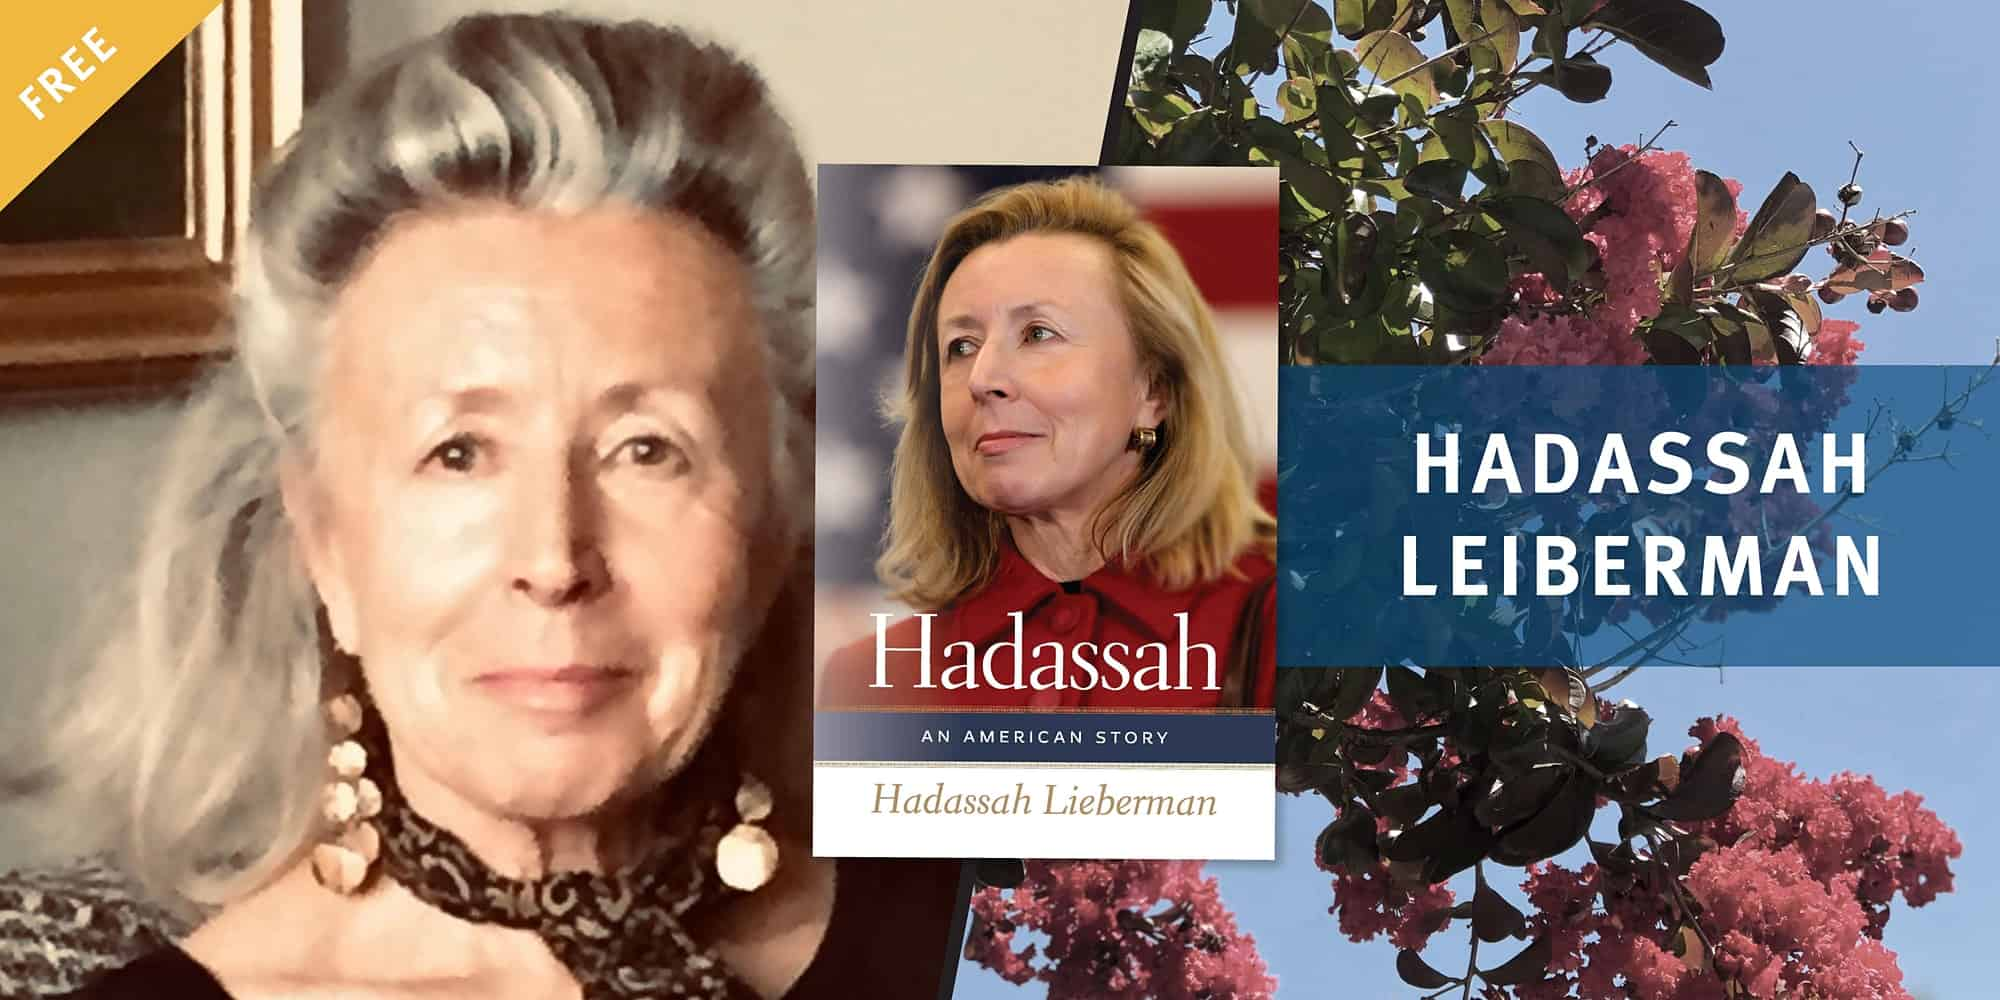 Hadassah Lieberman: The Immigrant Who Conquered the American Dream